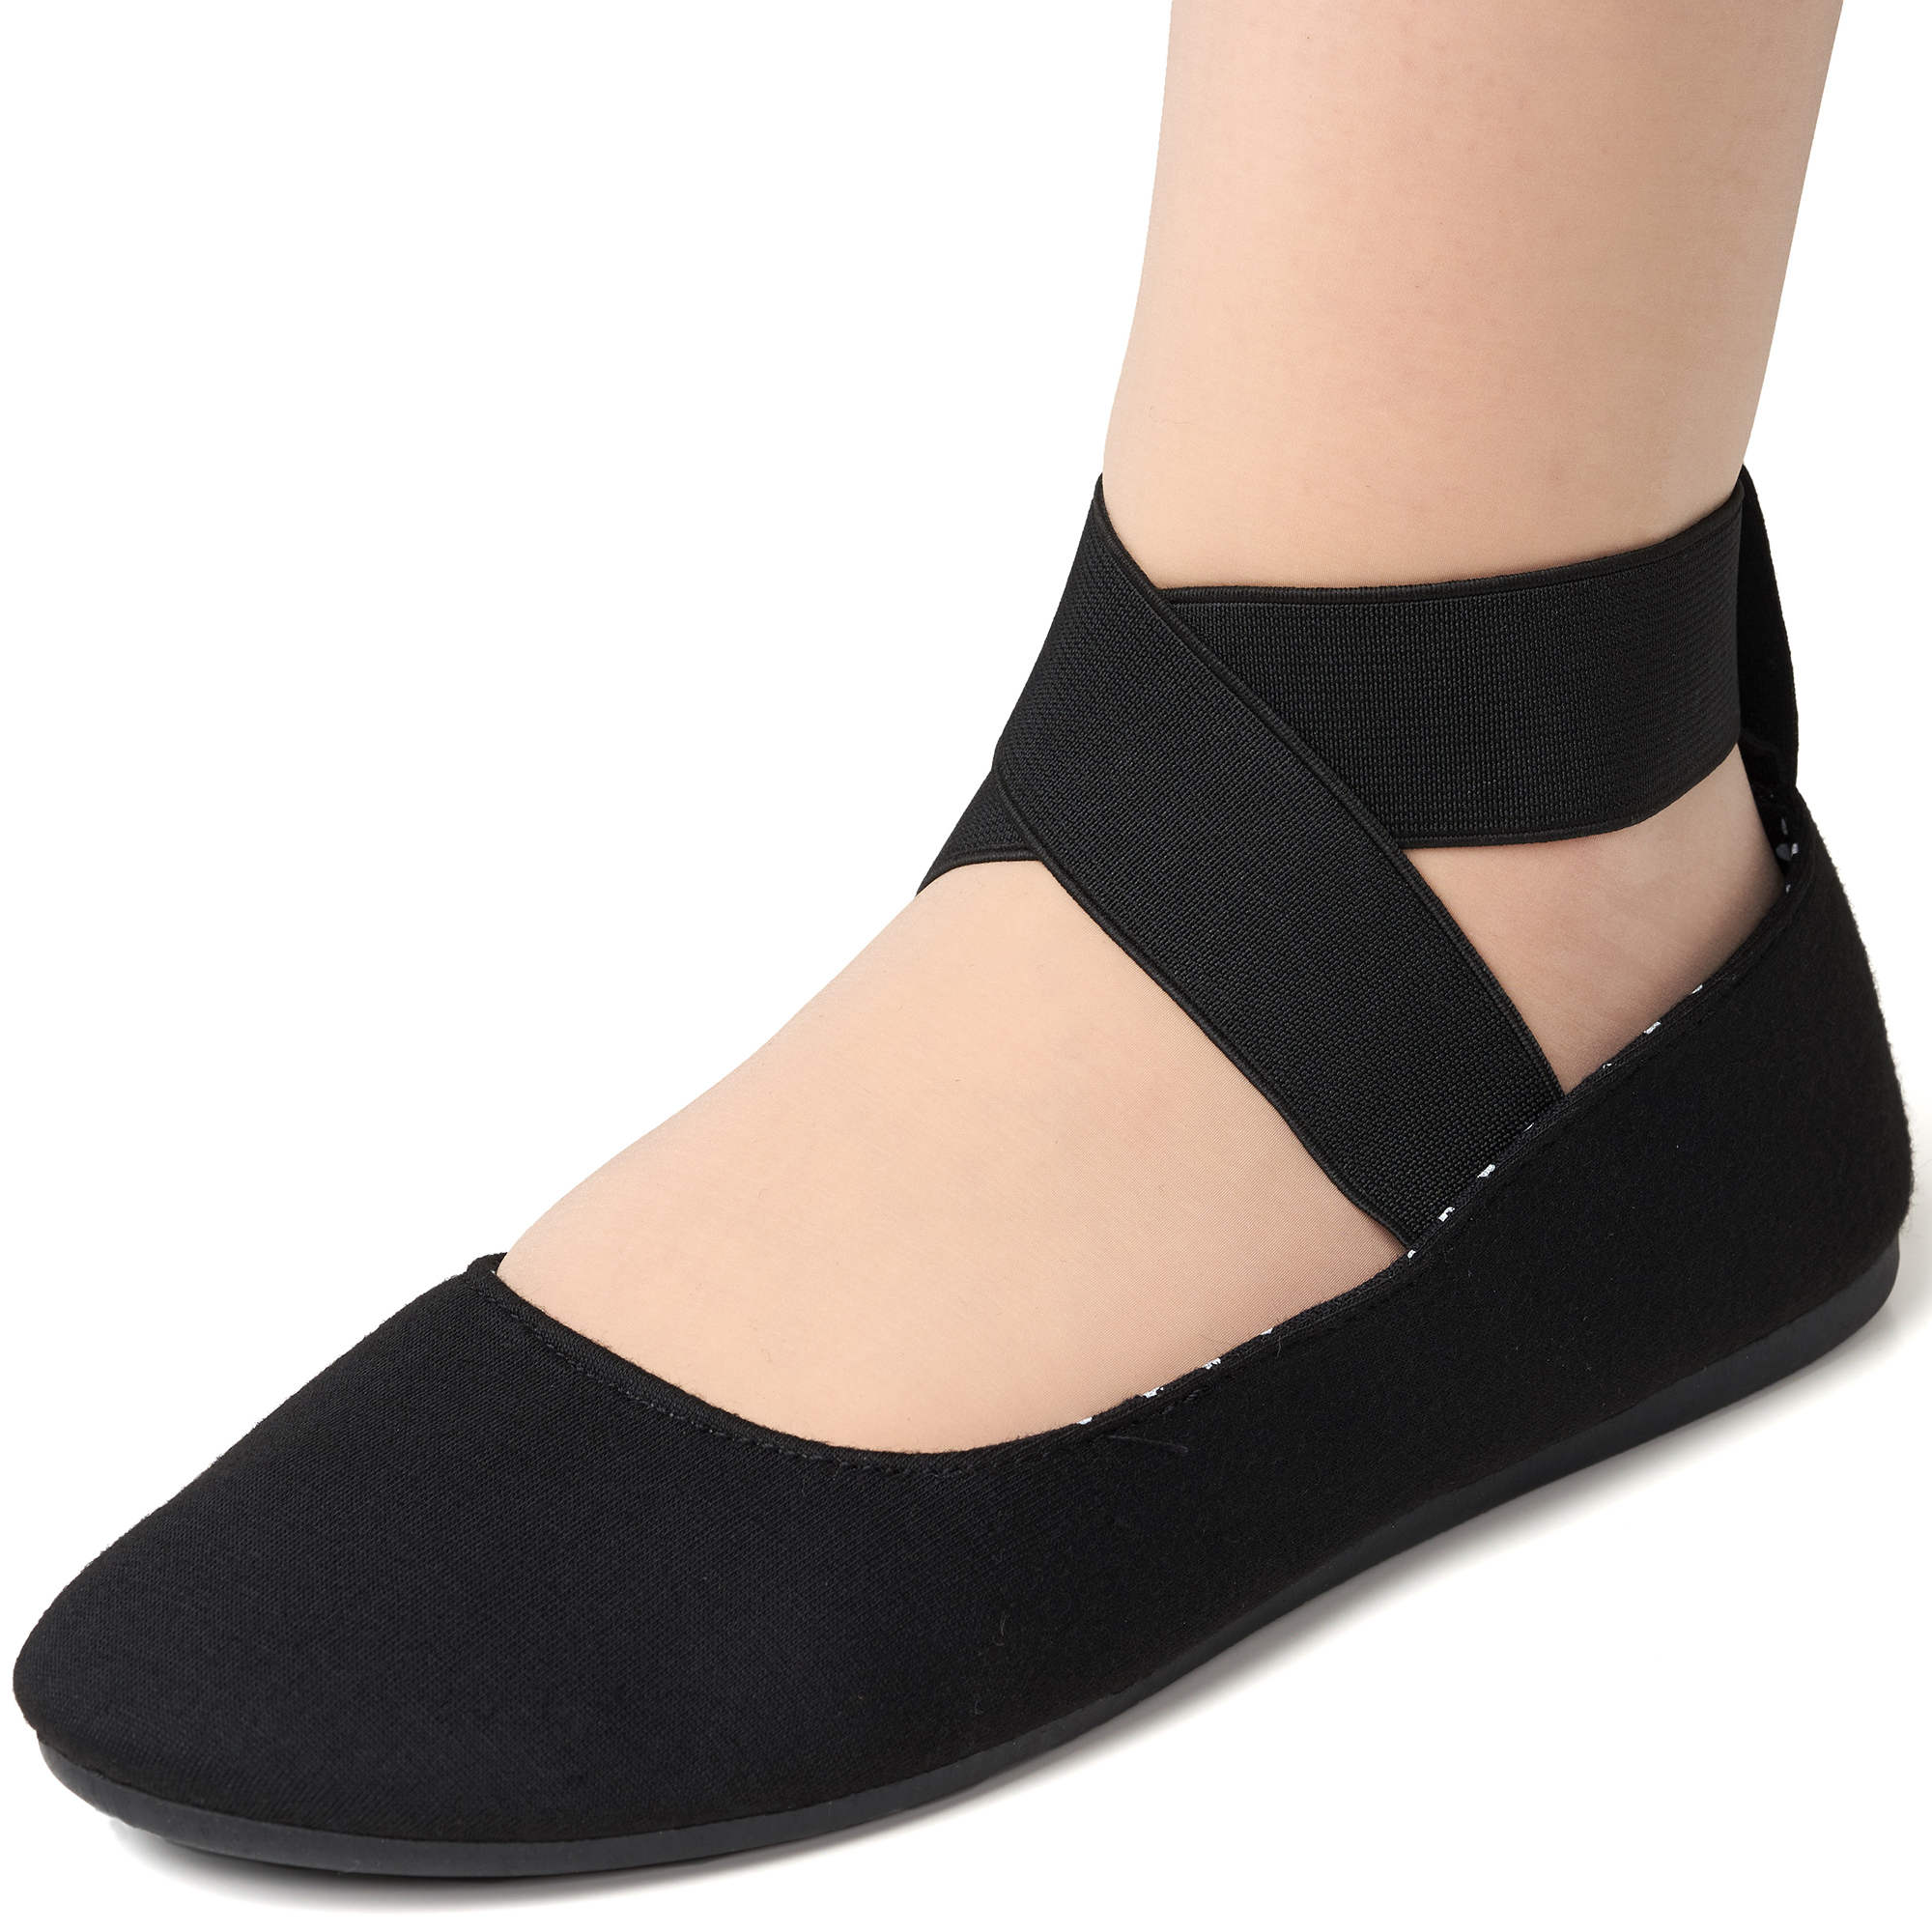 Alpine-Swiss-Peony-Womens-Ballet-Flats-Elastic-Ankle-Strap-Shoes-Slip-On-Loafers thumbnail 13